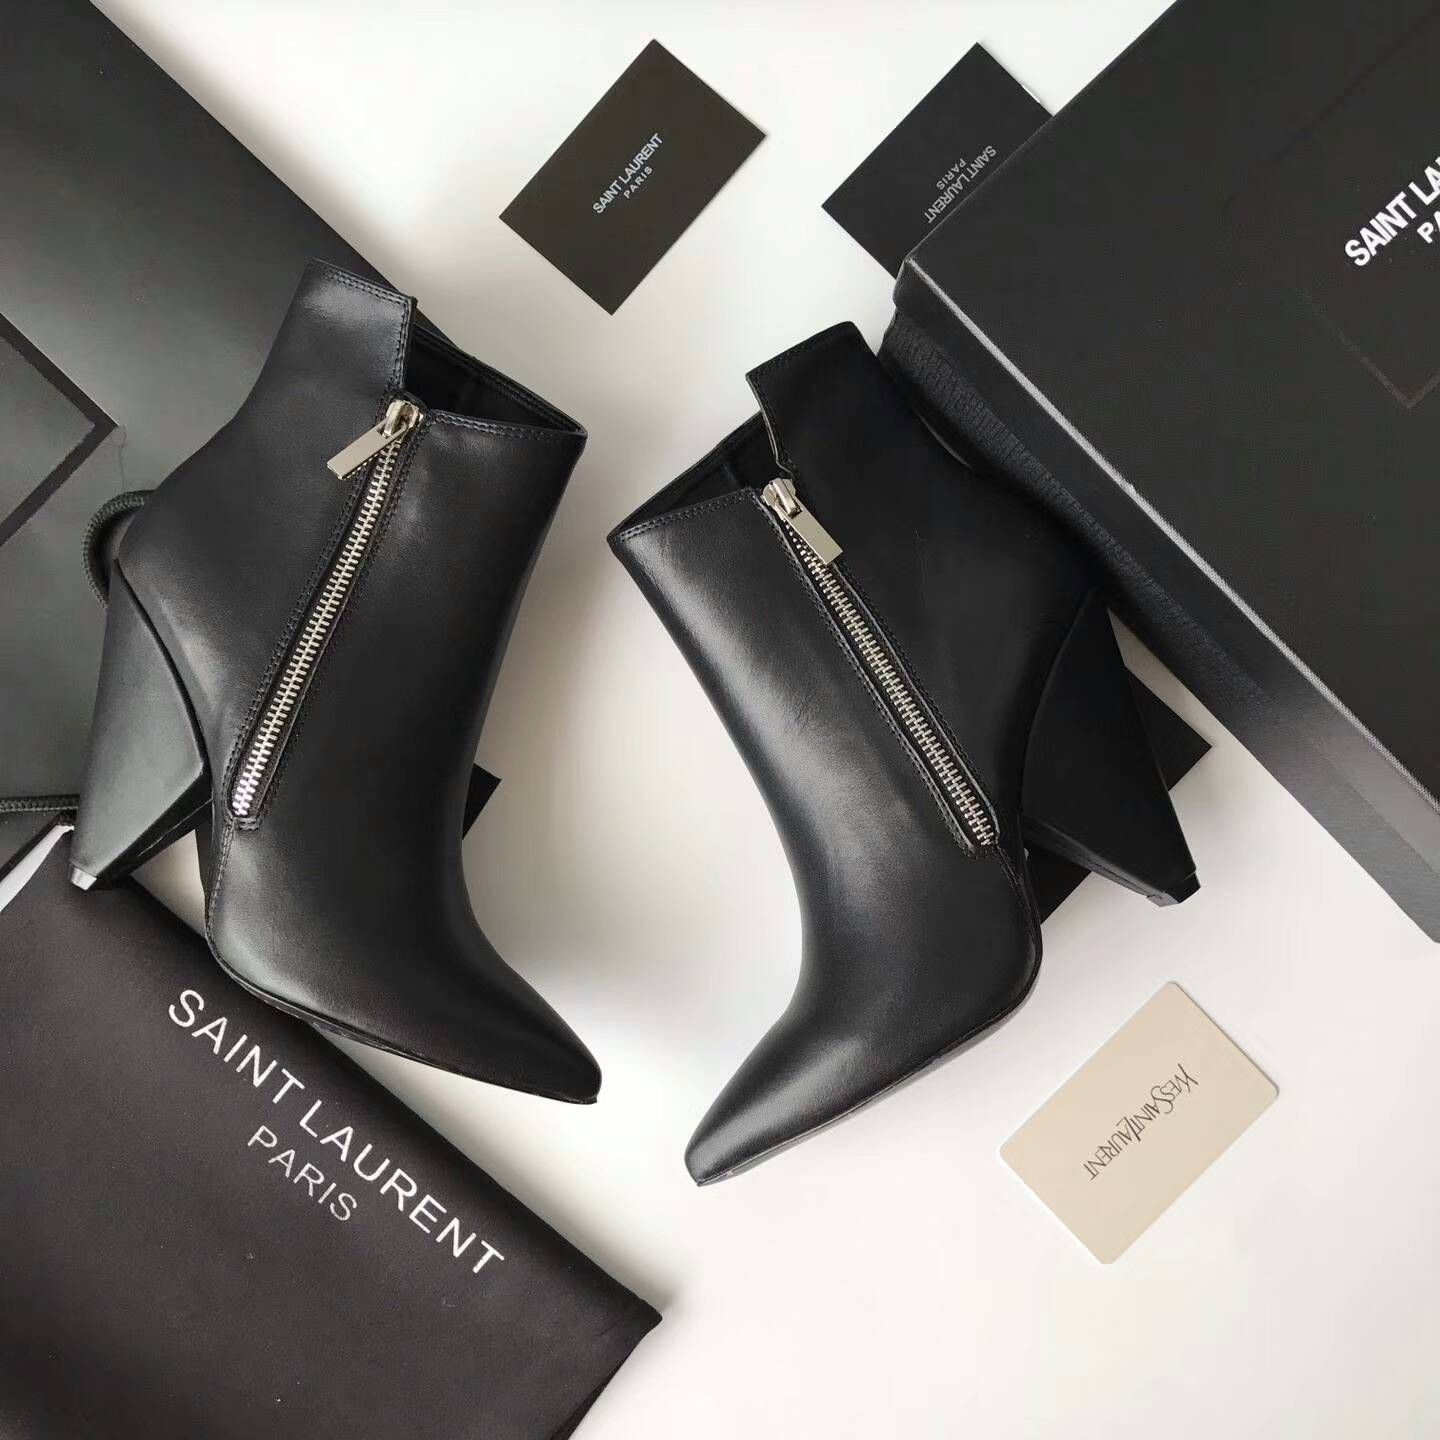 650e215a34e 2017 New Saint Laurent Niki Asymmetrical Ankle Boot in black Leather ...